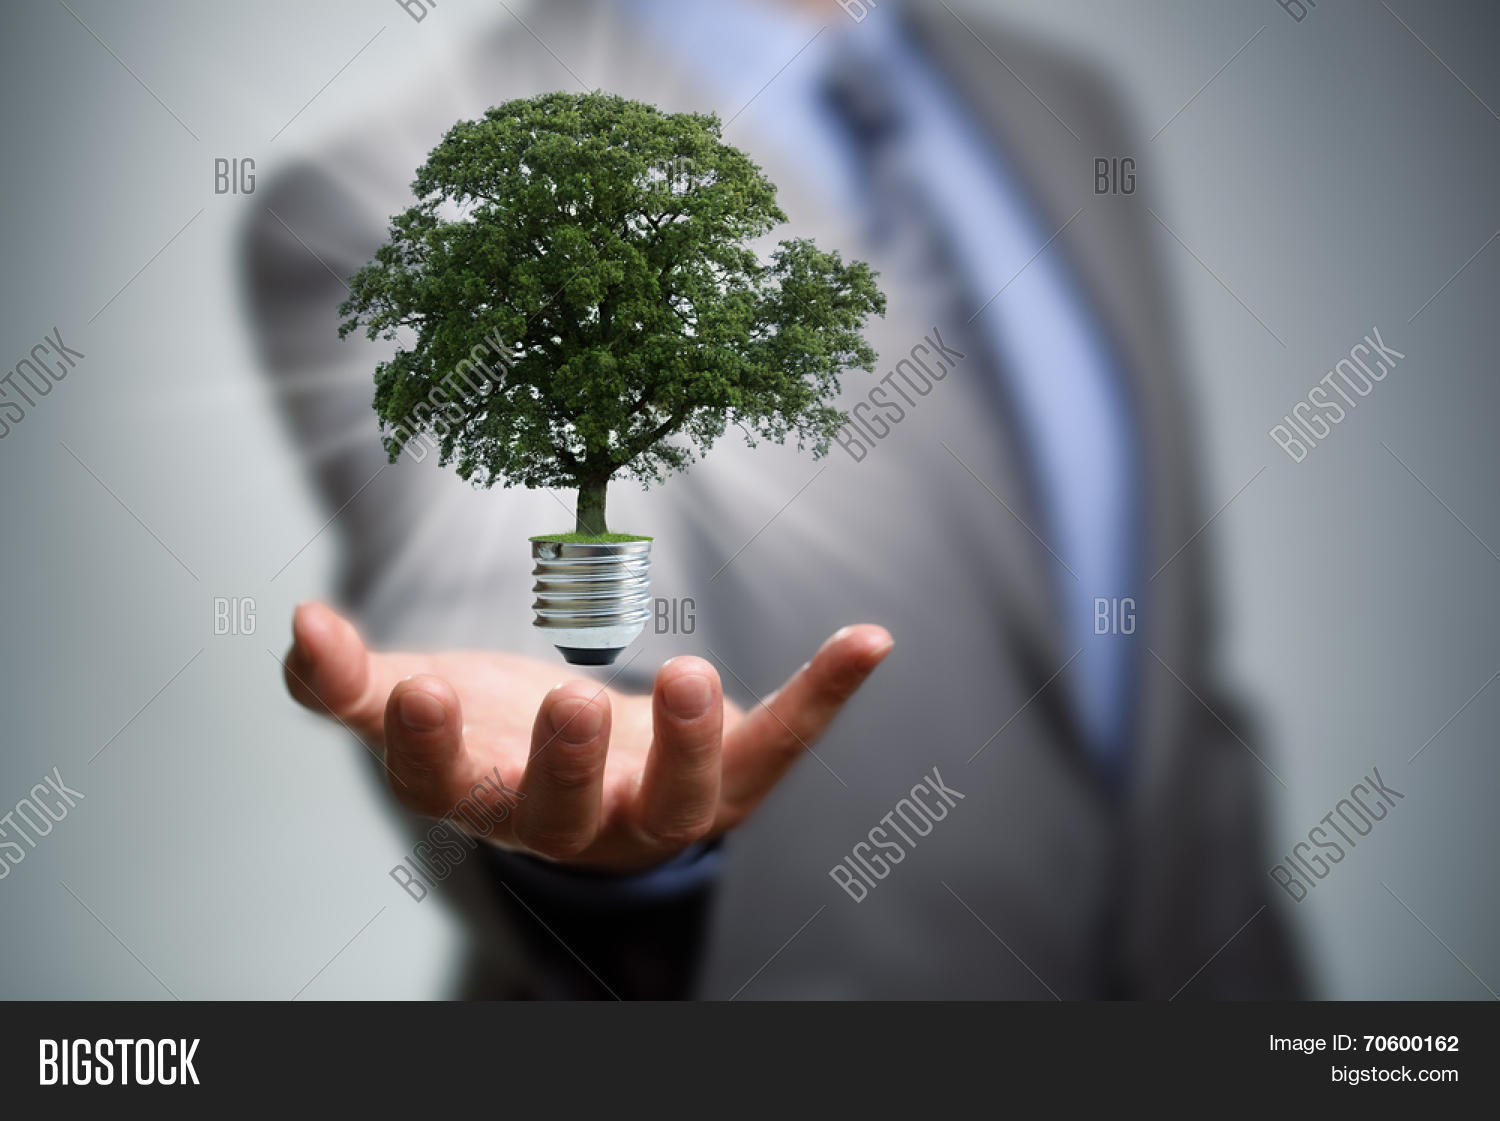 Sustainable Resources Image & Photo (Free Trial) | Bigstock